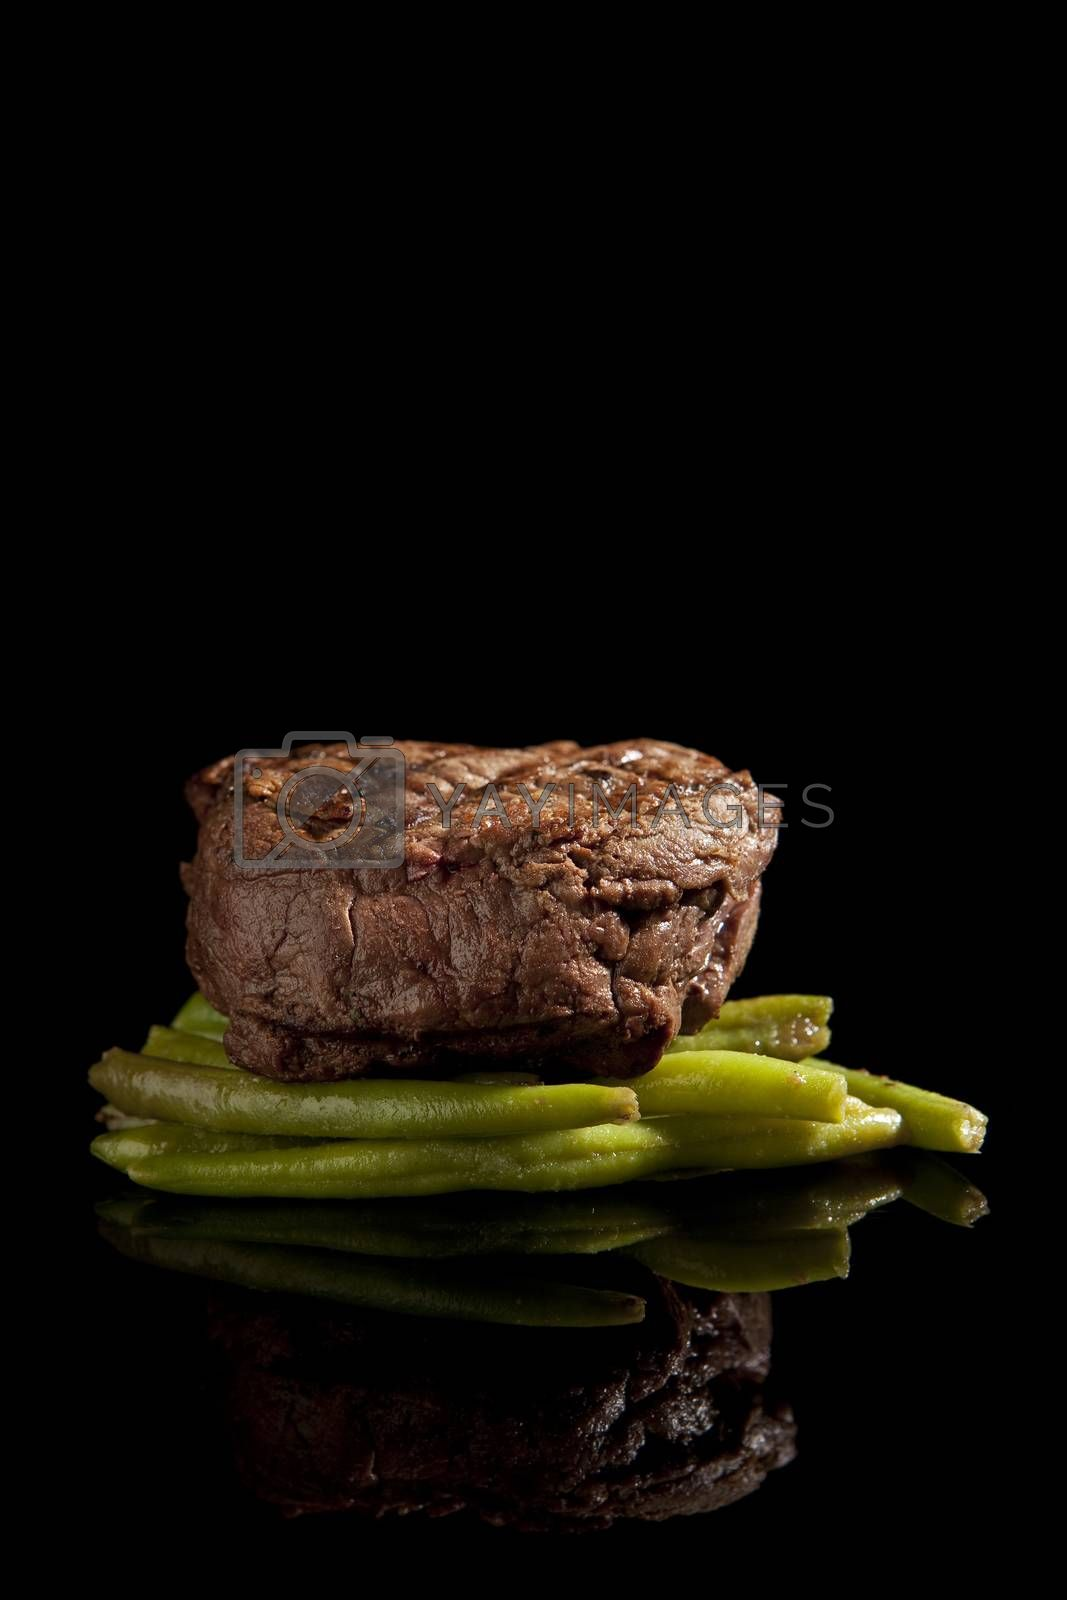 beef steak with beans on black background